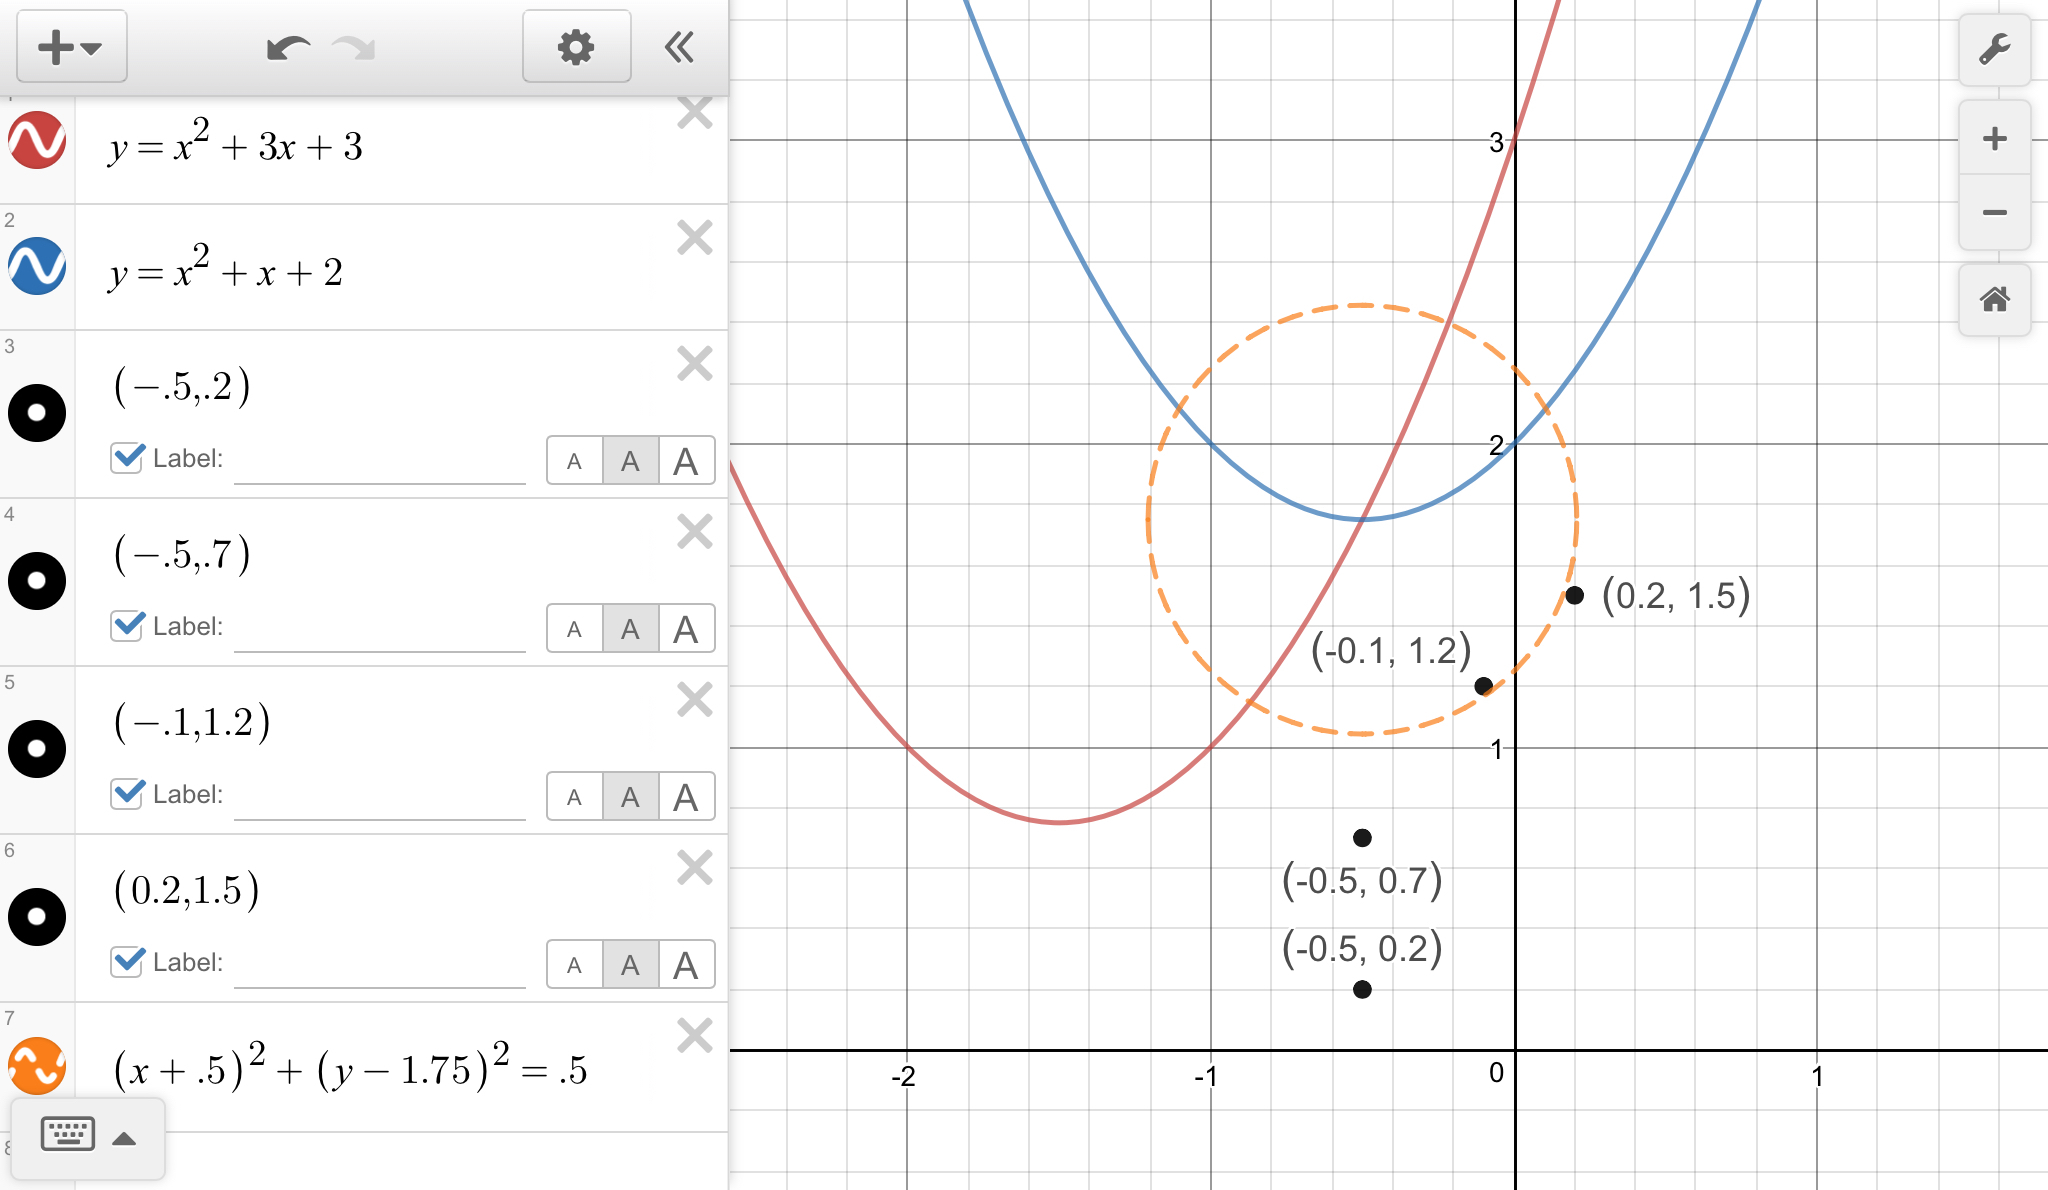 What Is The Approximate Solution Of This System Of